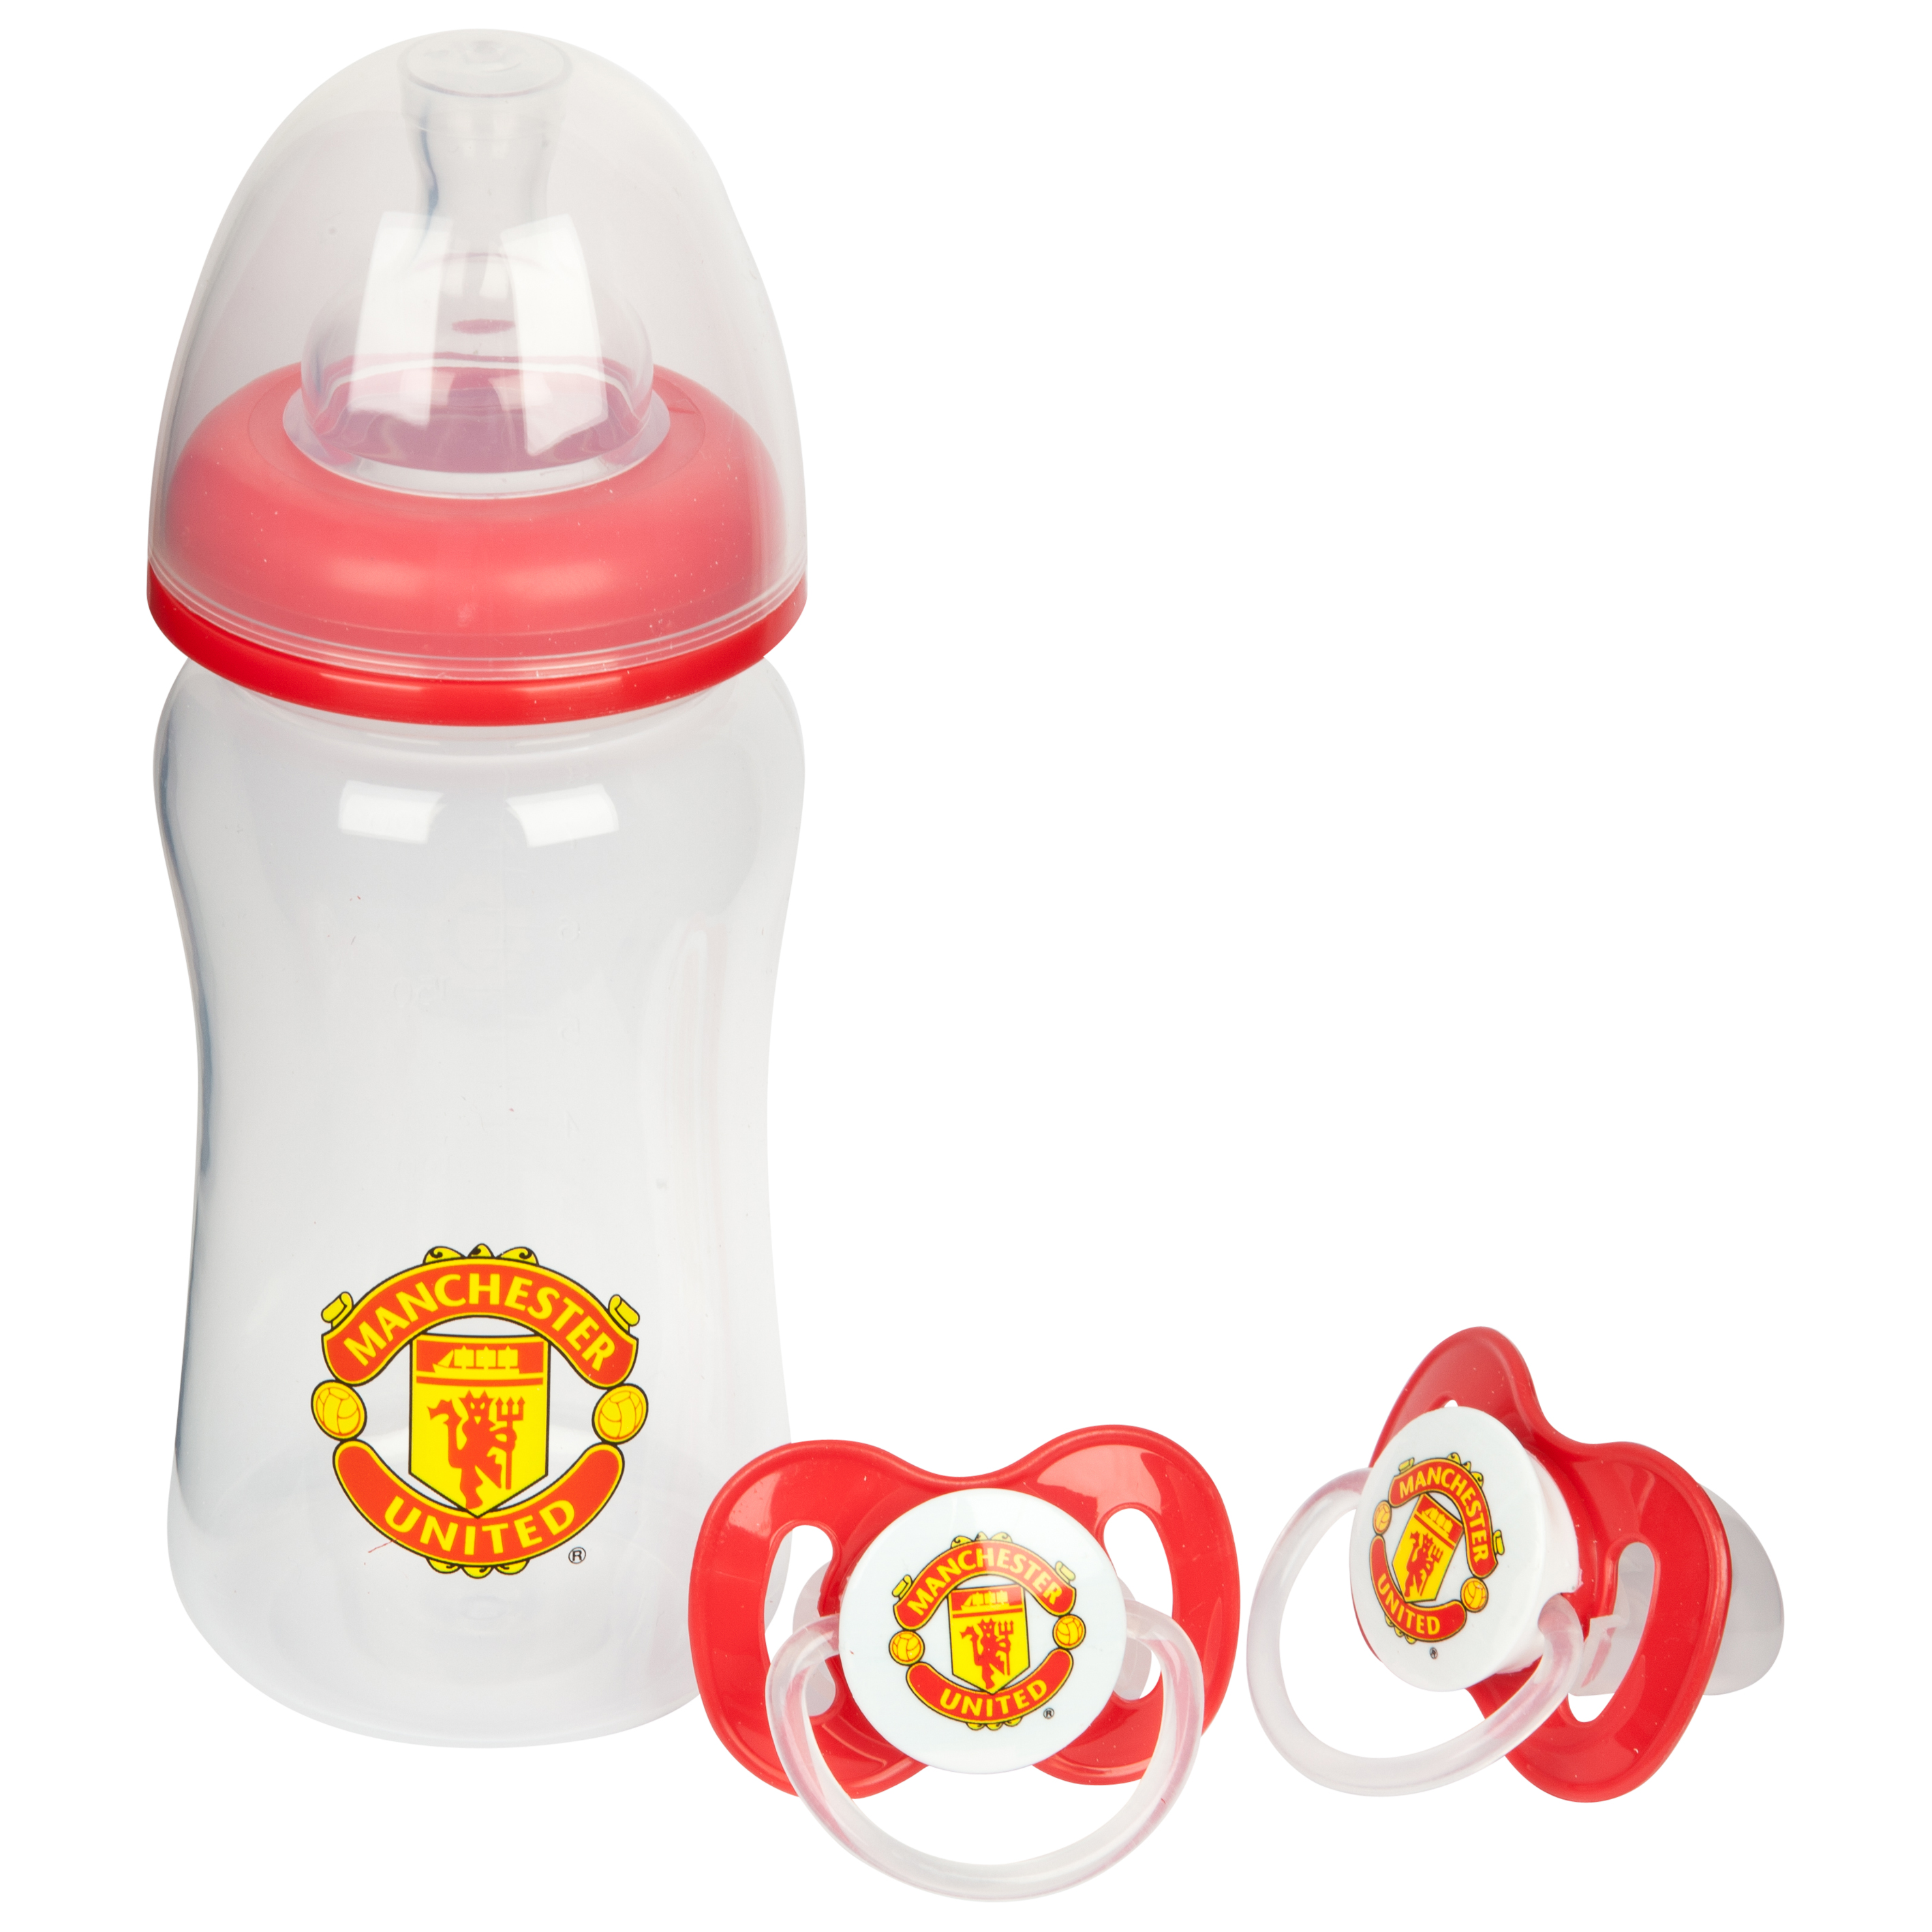 Manchester United Baby Bottle and Soothers Set